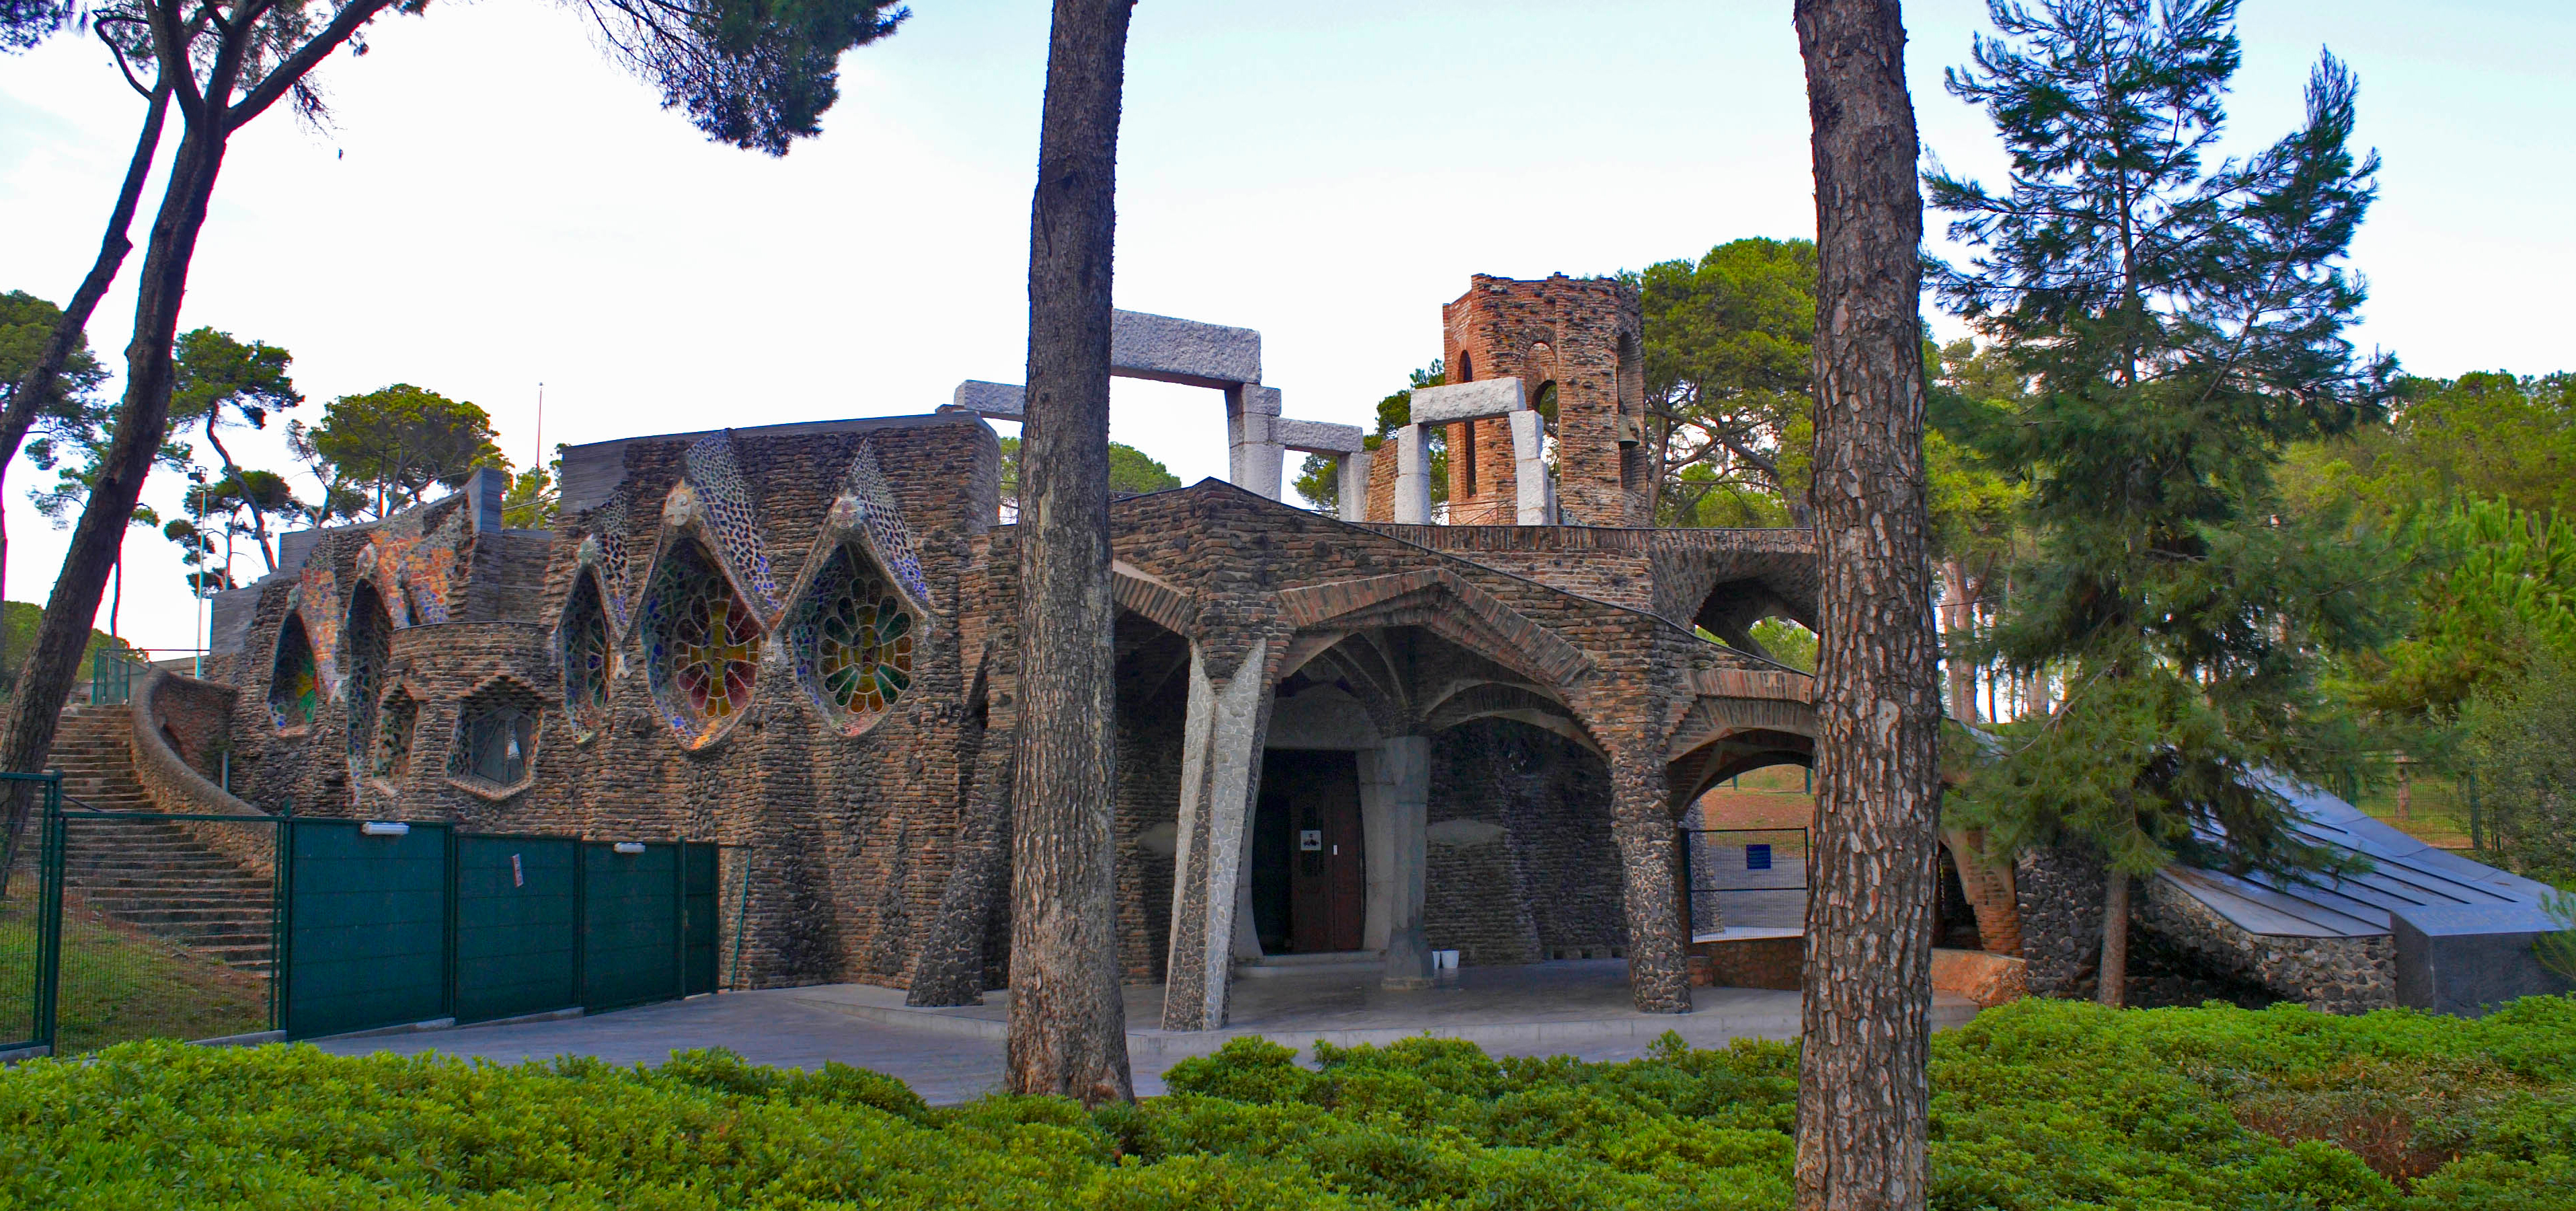 Parametric design in action - Gaudi's Church of Colony Güell